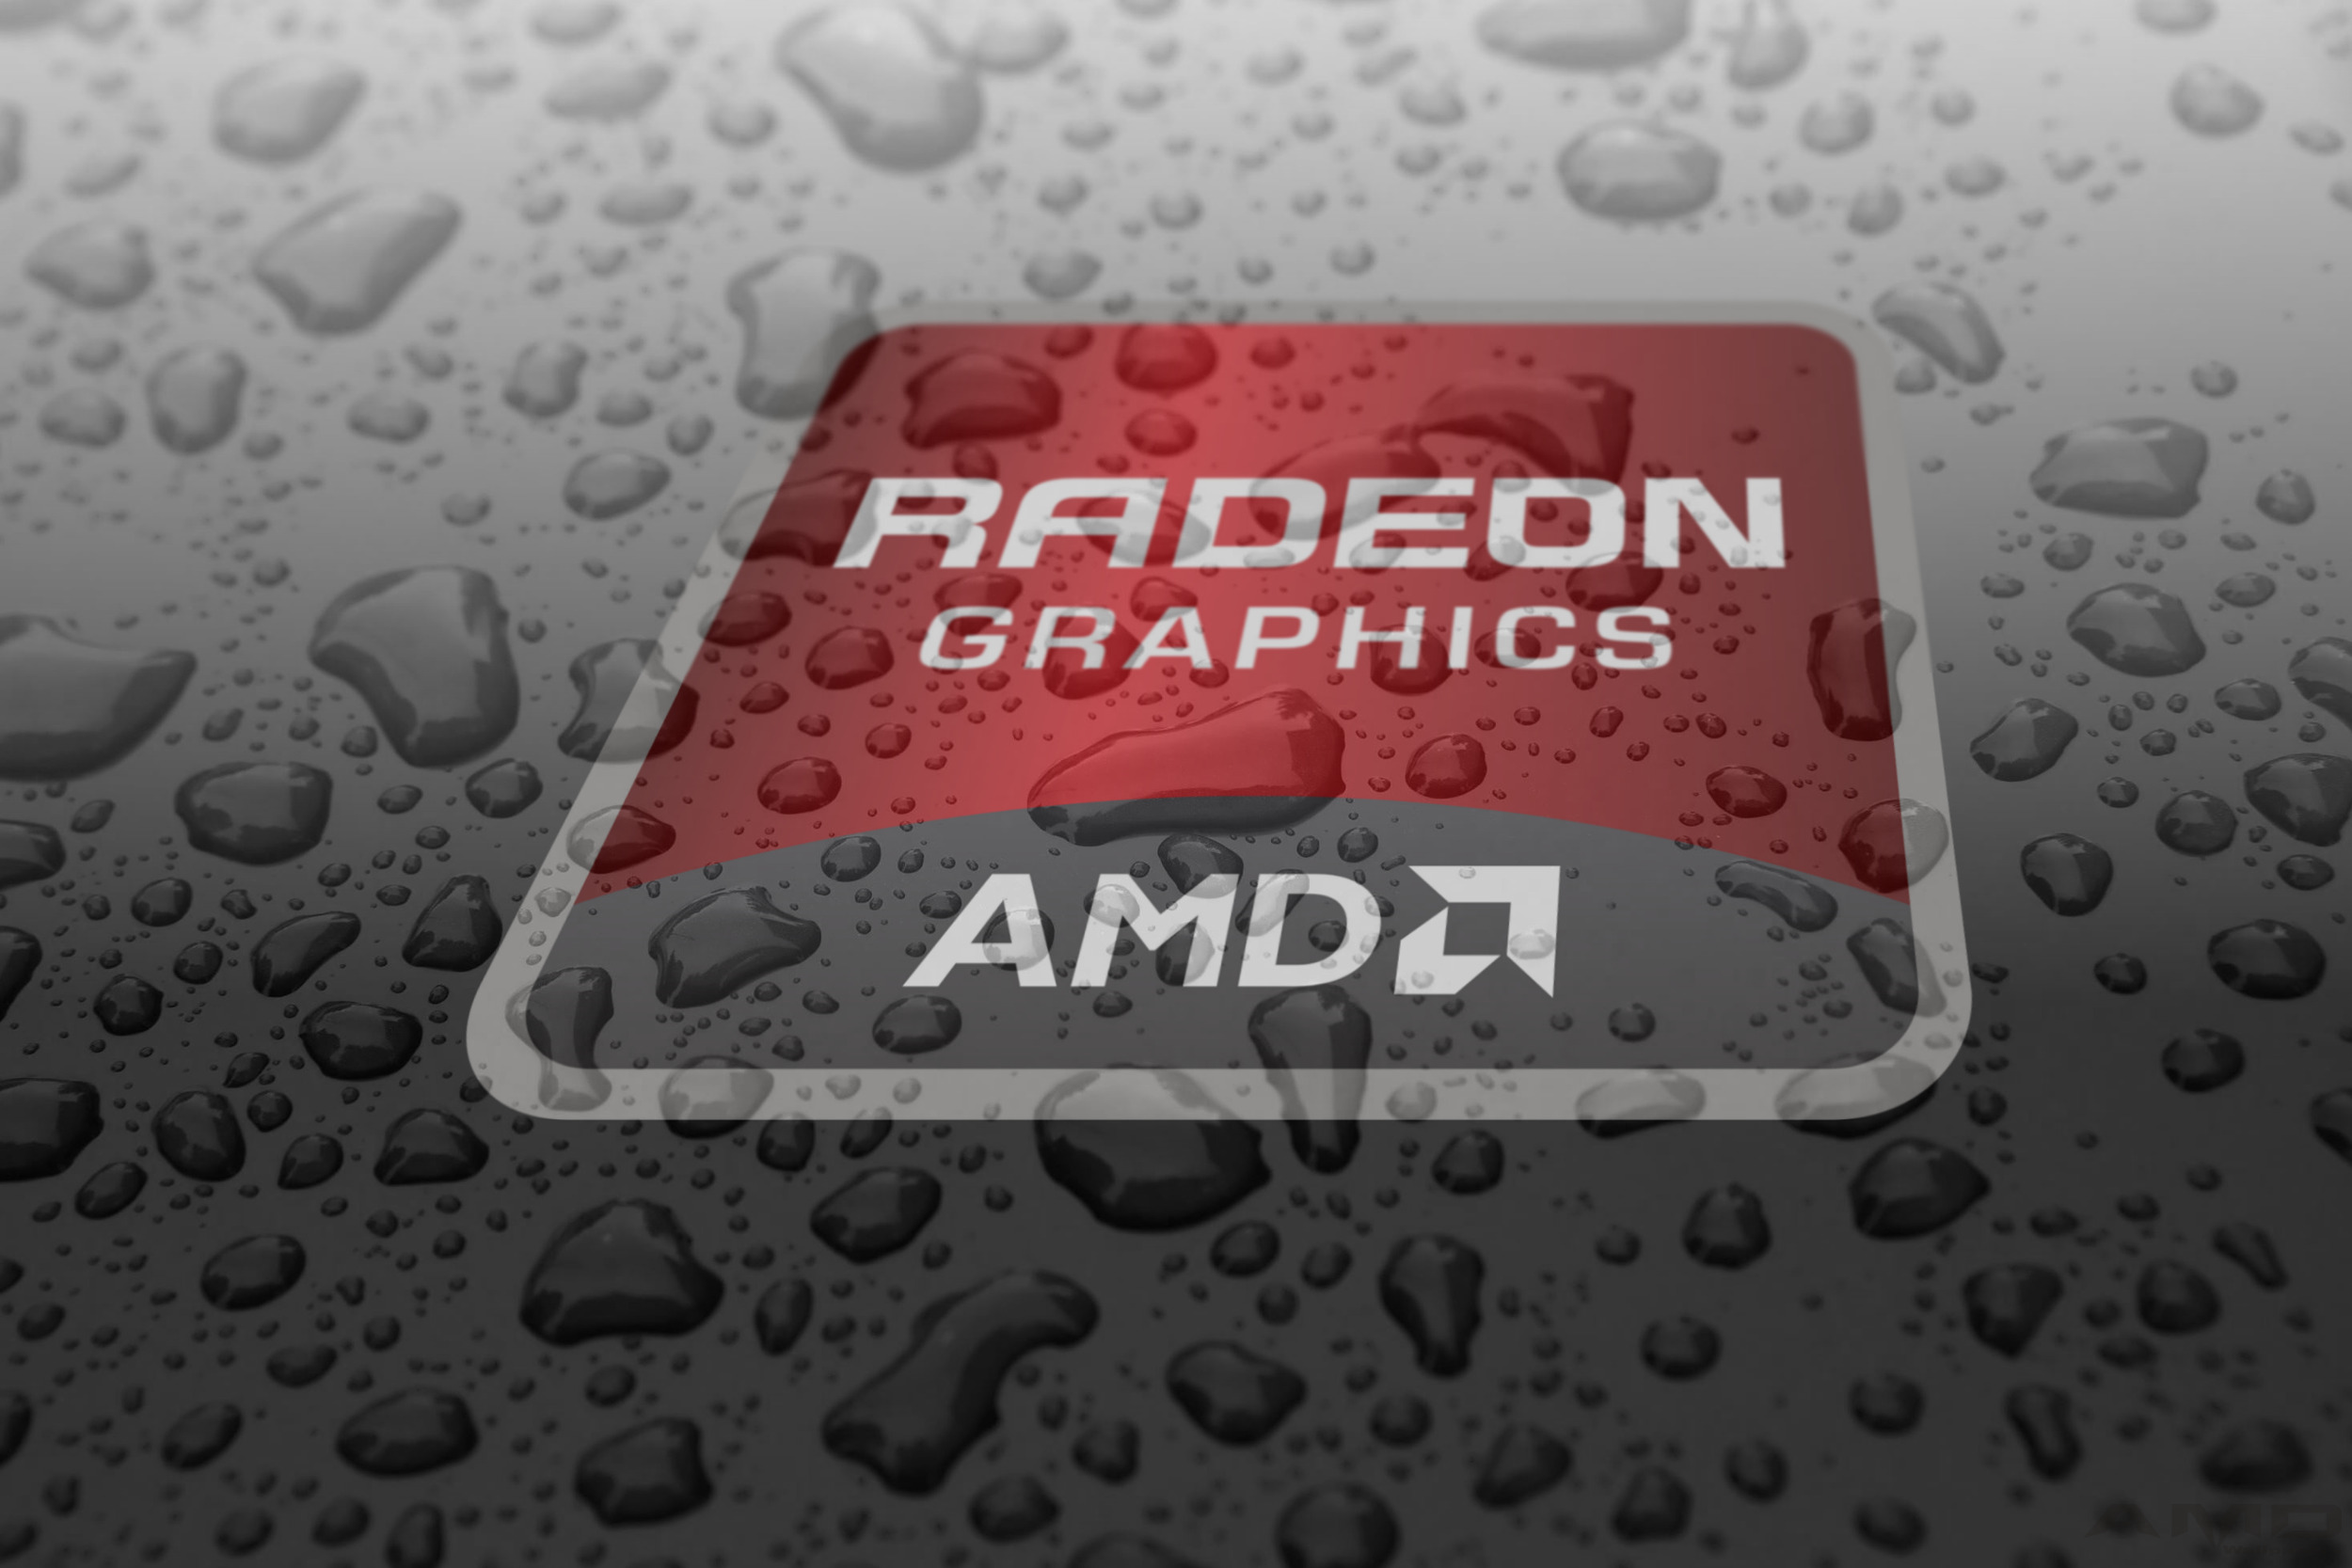 Processor phenom amd wallpaper animated background computers picture - Normal_hd_amd_radeon_water_drops_color Jpg Normal_hd_amd_radeon_water_drops Jpg More Wallpapers